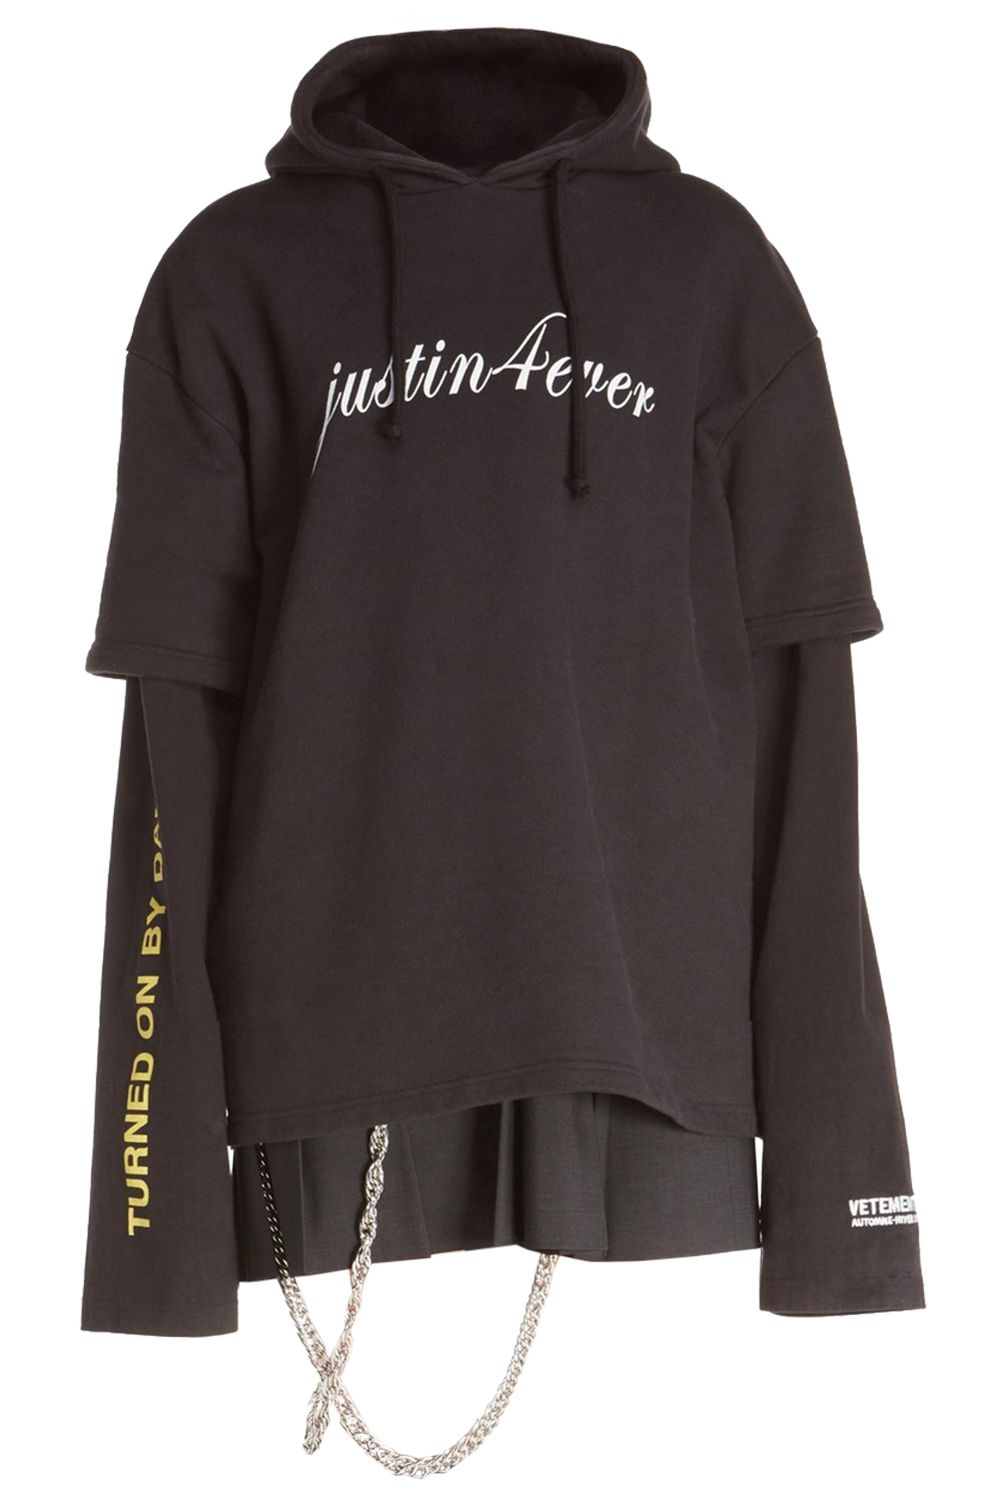 "<p>We unabashedly love Vetements and tour merch, so it's only natural that a mash-up would have us frothing at the mouth. This hoodie dress is a fusion of everything that's trending, so it definitely won't be available for long. </p><p><em data-redactor-tag=""em"">Vetements Justin4Ever Double Sleeve Graphic Hoodie Dress, $2,690; </em><em data-redactor-tag=""em""><a href=""http://shop.nordstrom.com/s/vetements-justin4ever-double-sleeve-graphic-hoodie-dress/4376997?origin=category-personalizedsort"" target=""_blank"">nordstrom.com</a></em></p><p>For more graphic trends, shop at <a href=""https://www.westfield.com/products/collection/graphic-sweats?utm_source=Hearst&utm_medium=Elle&utm_content=Graphic-Sweats"" target=""_blank"">Westfield</a></p>"